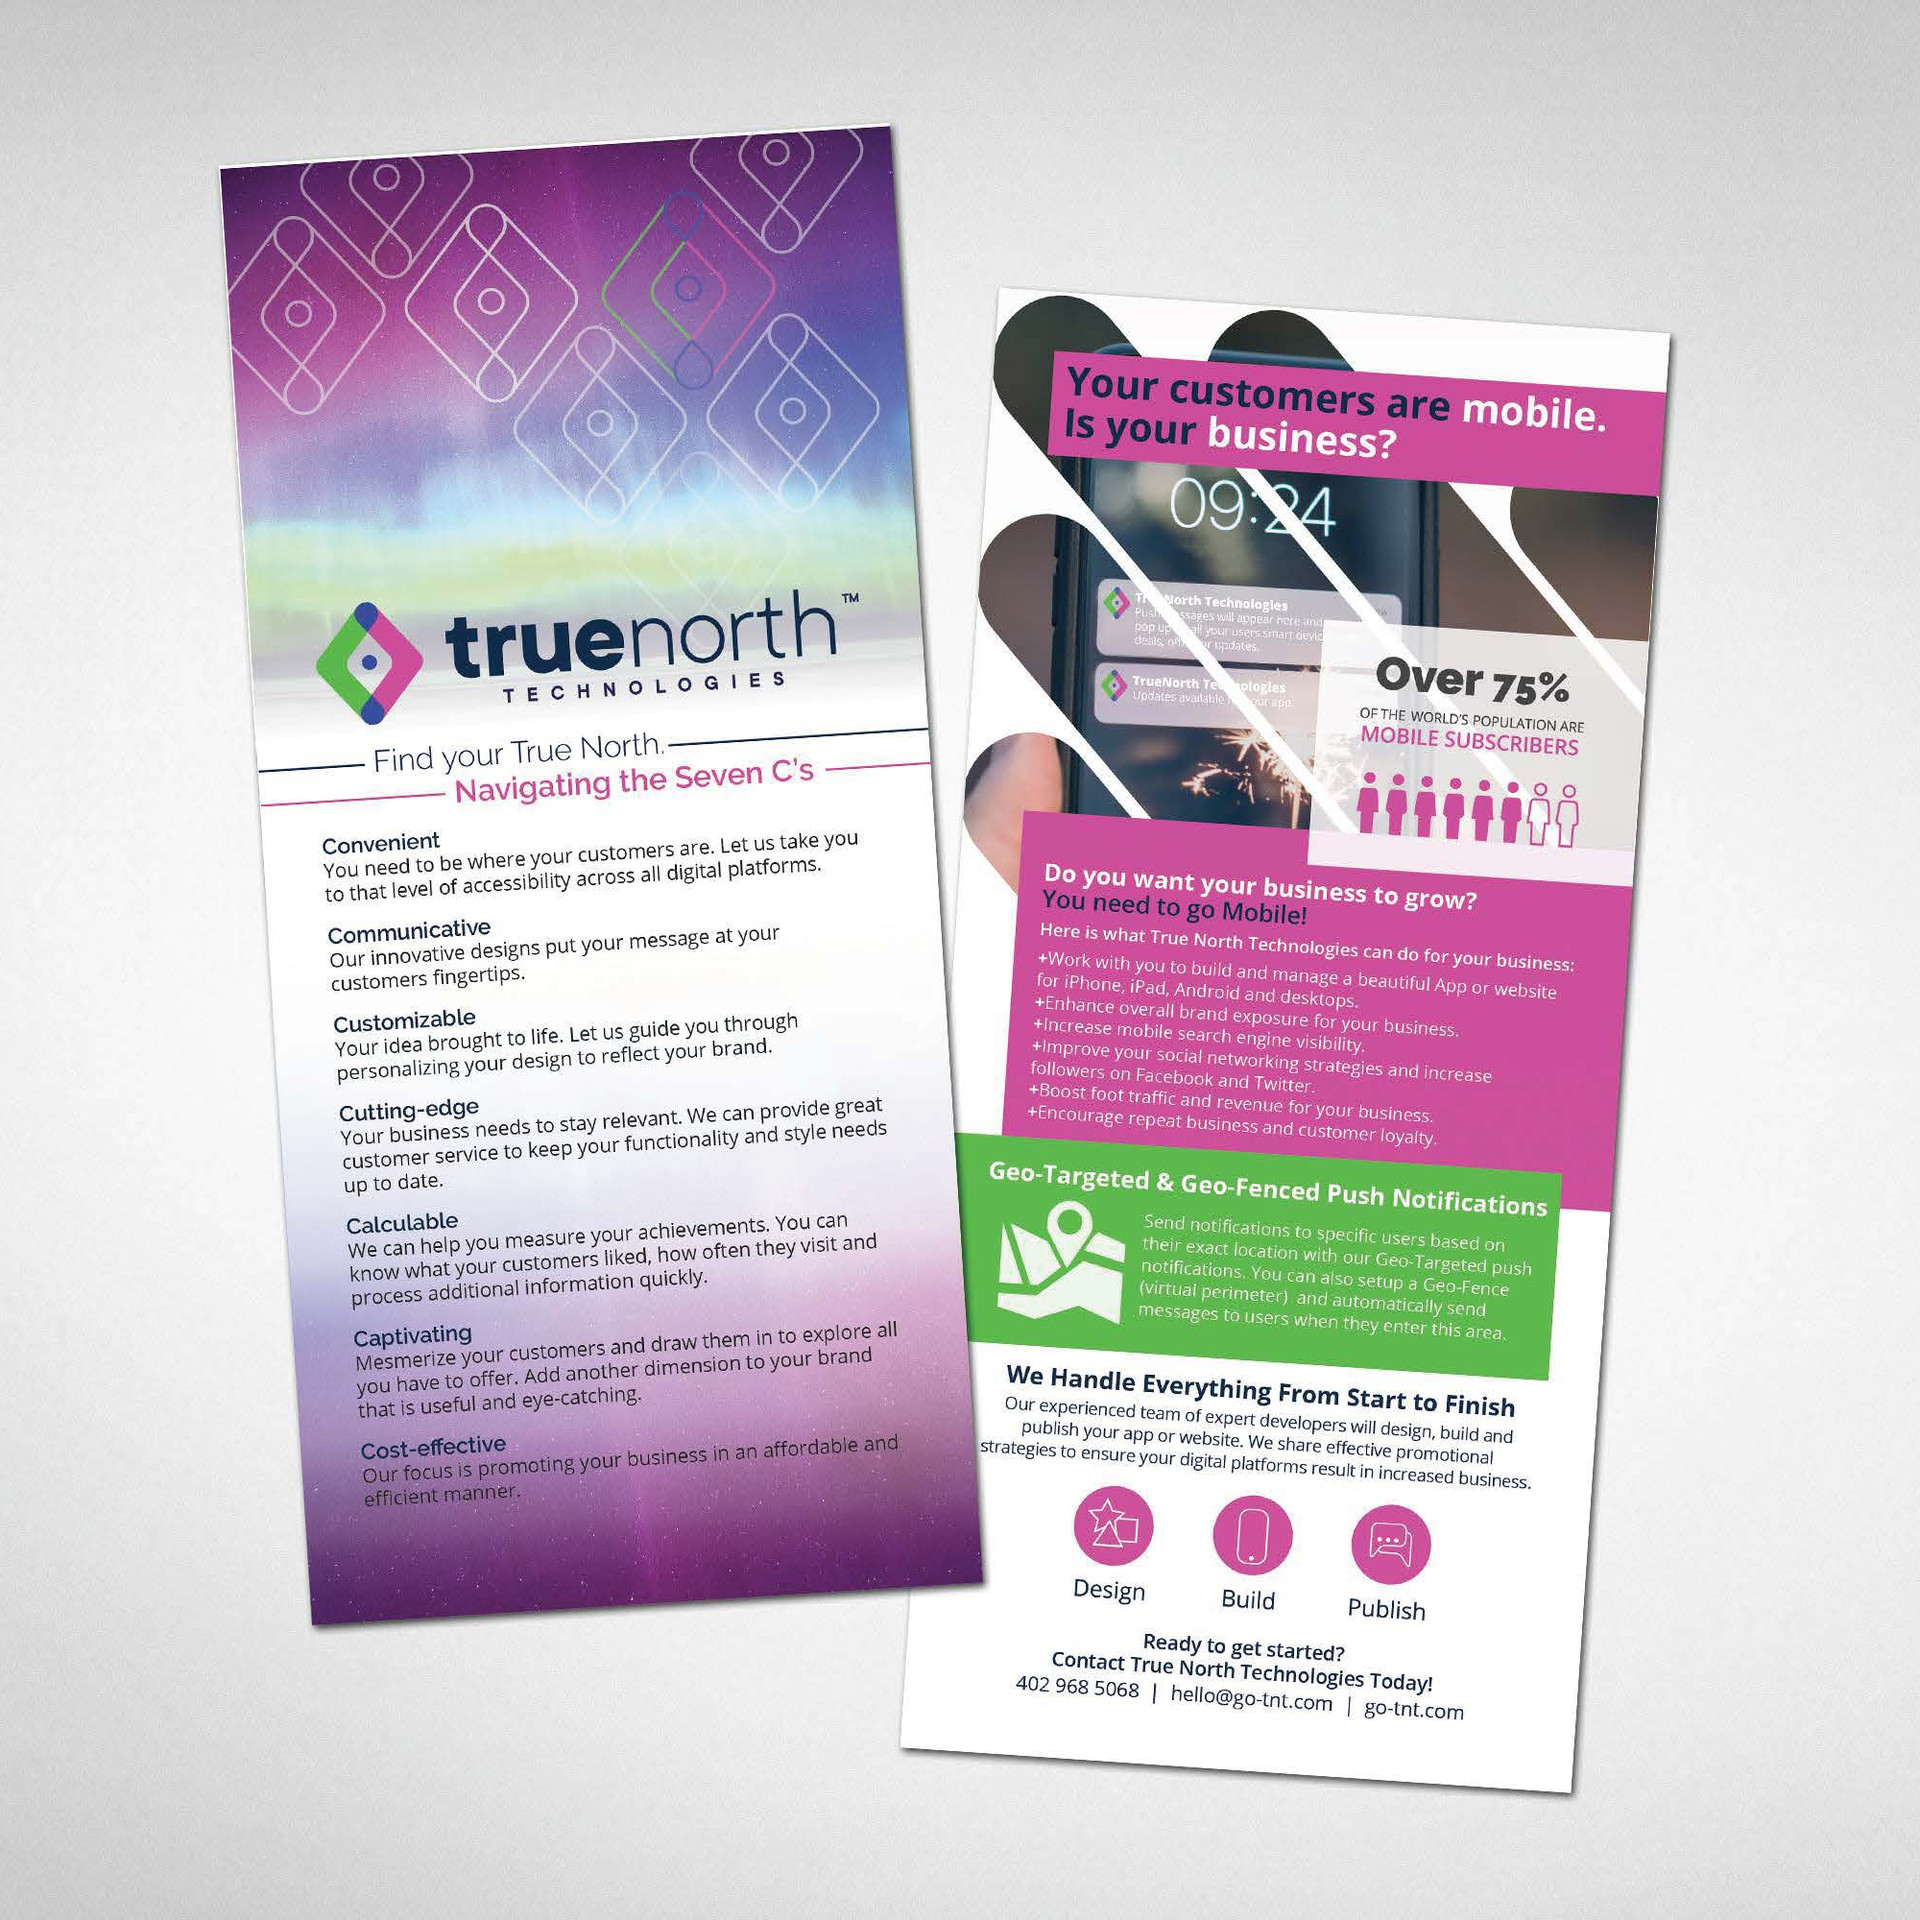 Front and Back Rack Card design for a Mobile App and Web Design Company, True North Technologies. They had information that they wanted to hand out to new and potential clients that summed up what they can help with and provide.  *True North Technologies logo was desgined by another agency.